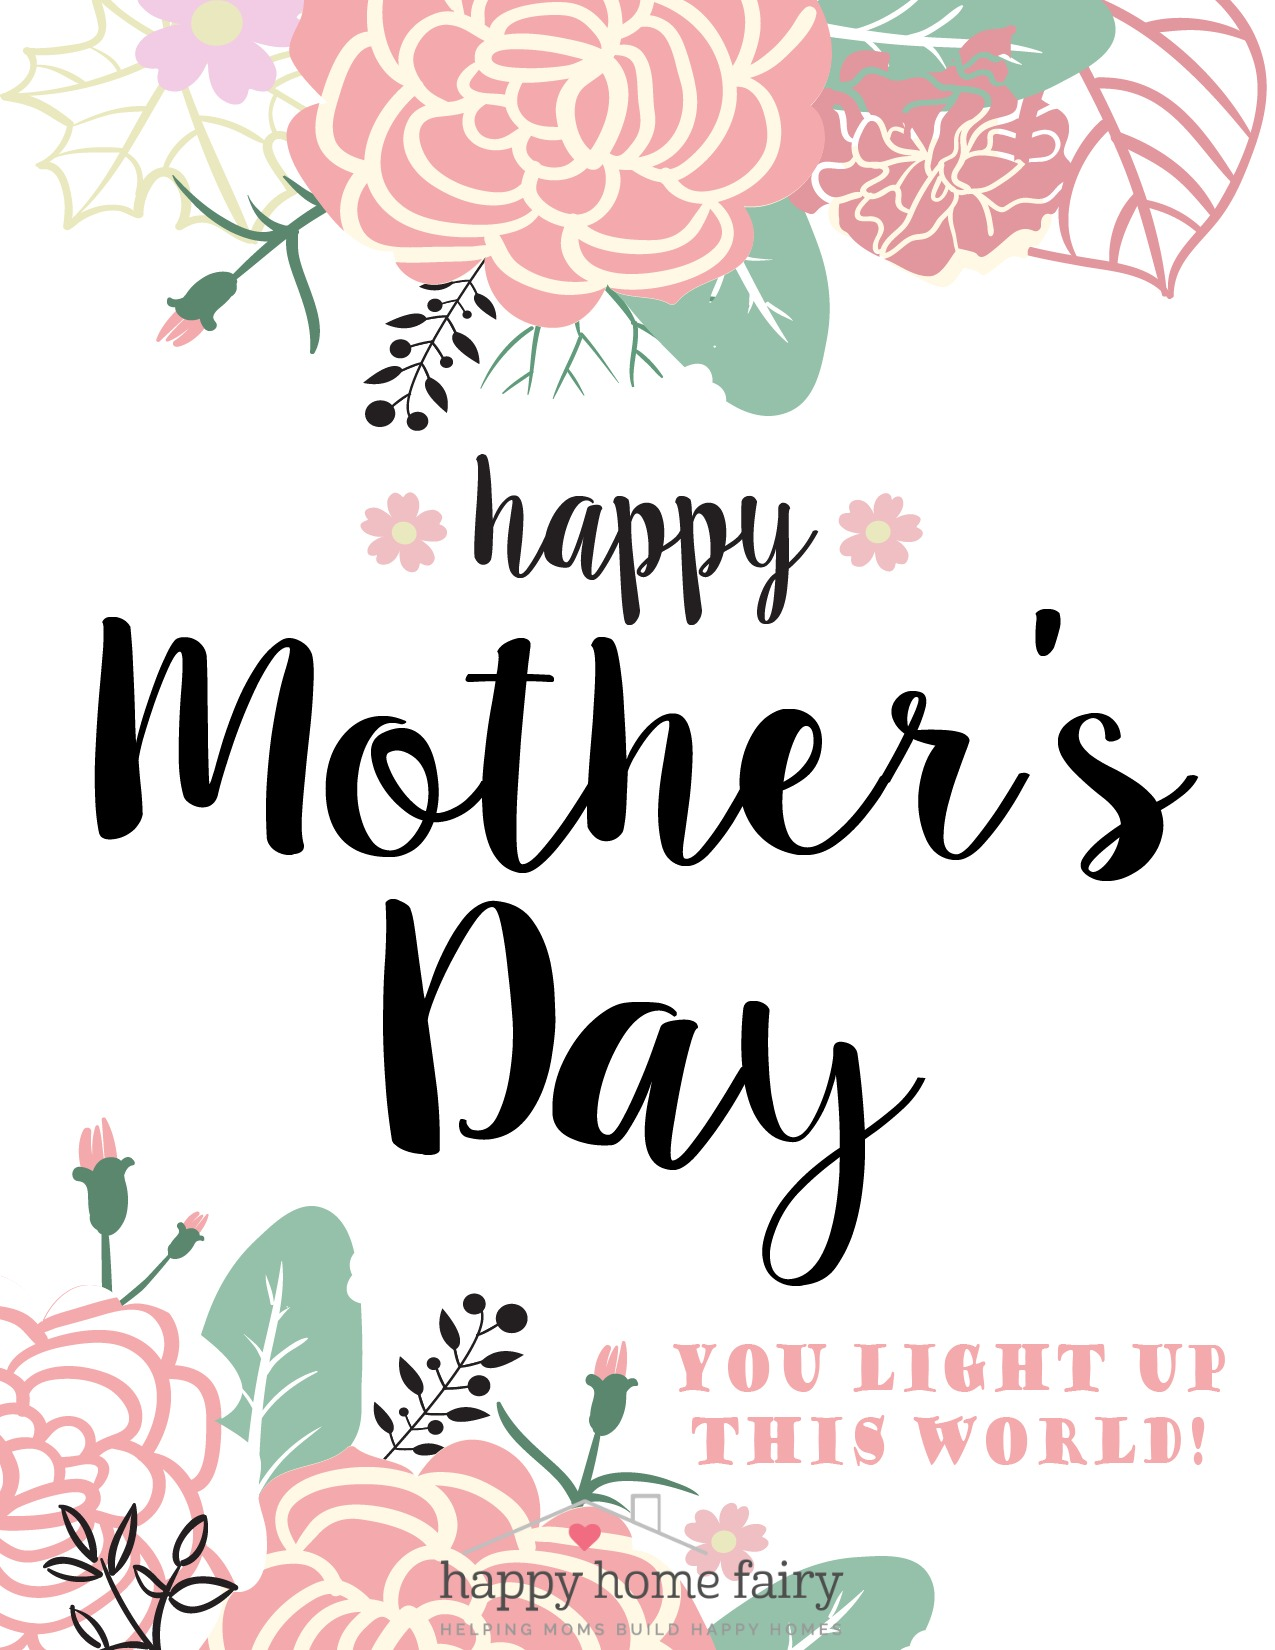 picture relating to Happy Mothers Day Printable called Basic Moms Working day Present Concept - Free of charge Printable! - Pleased Property